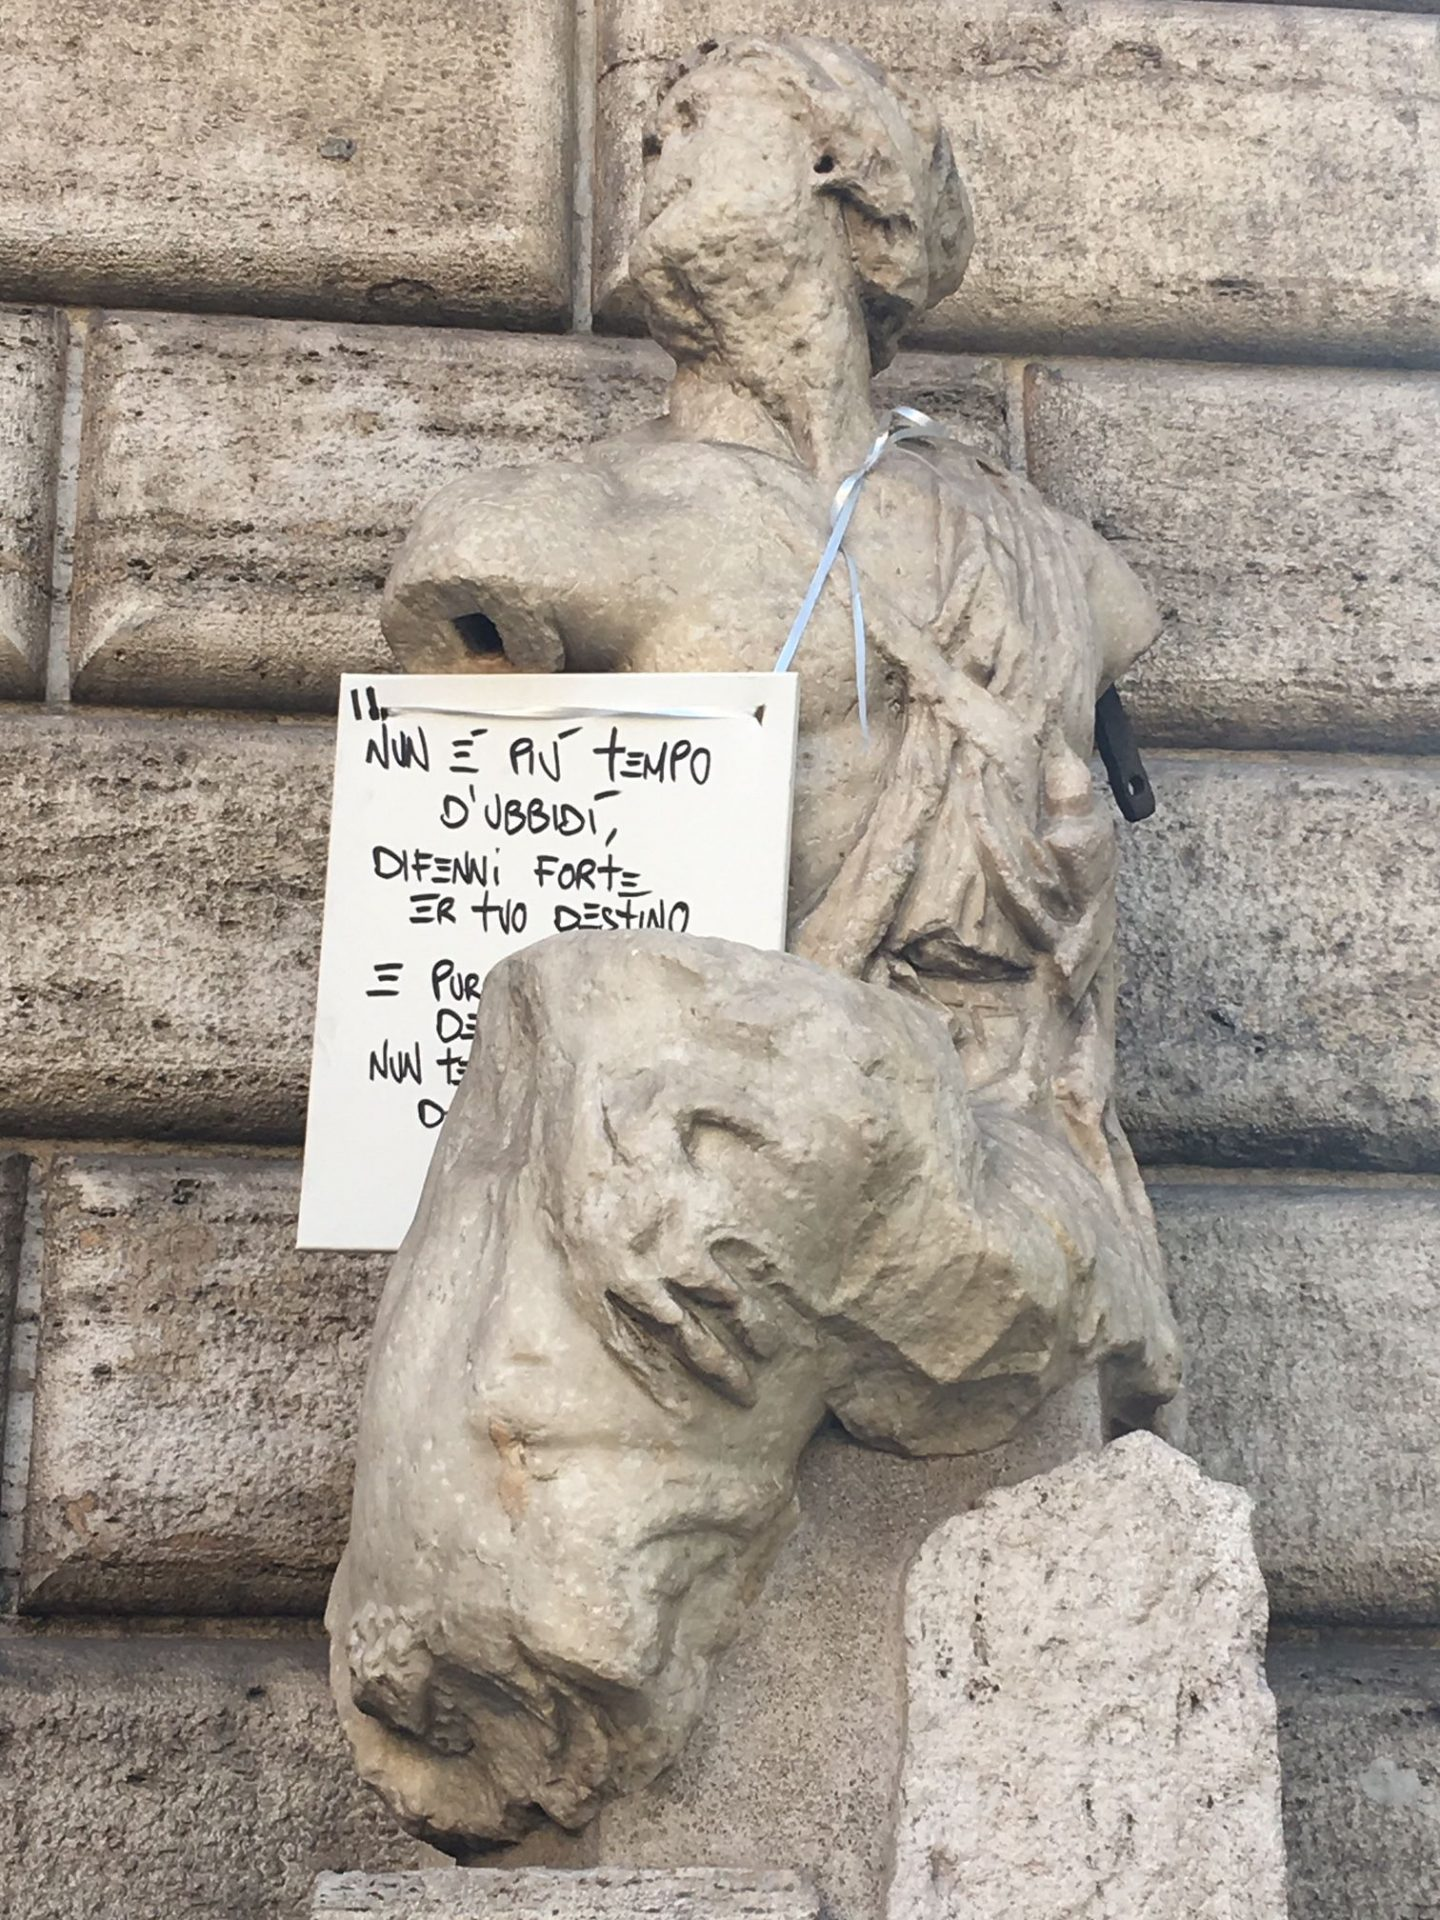 Pasquino the talking Statue of Rome